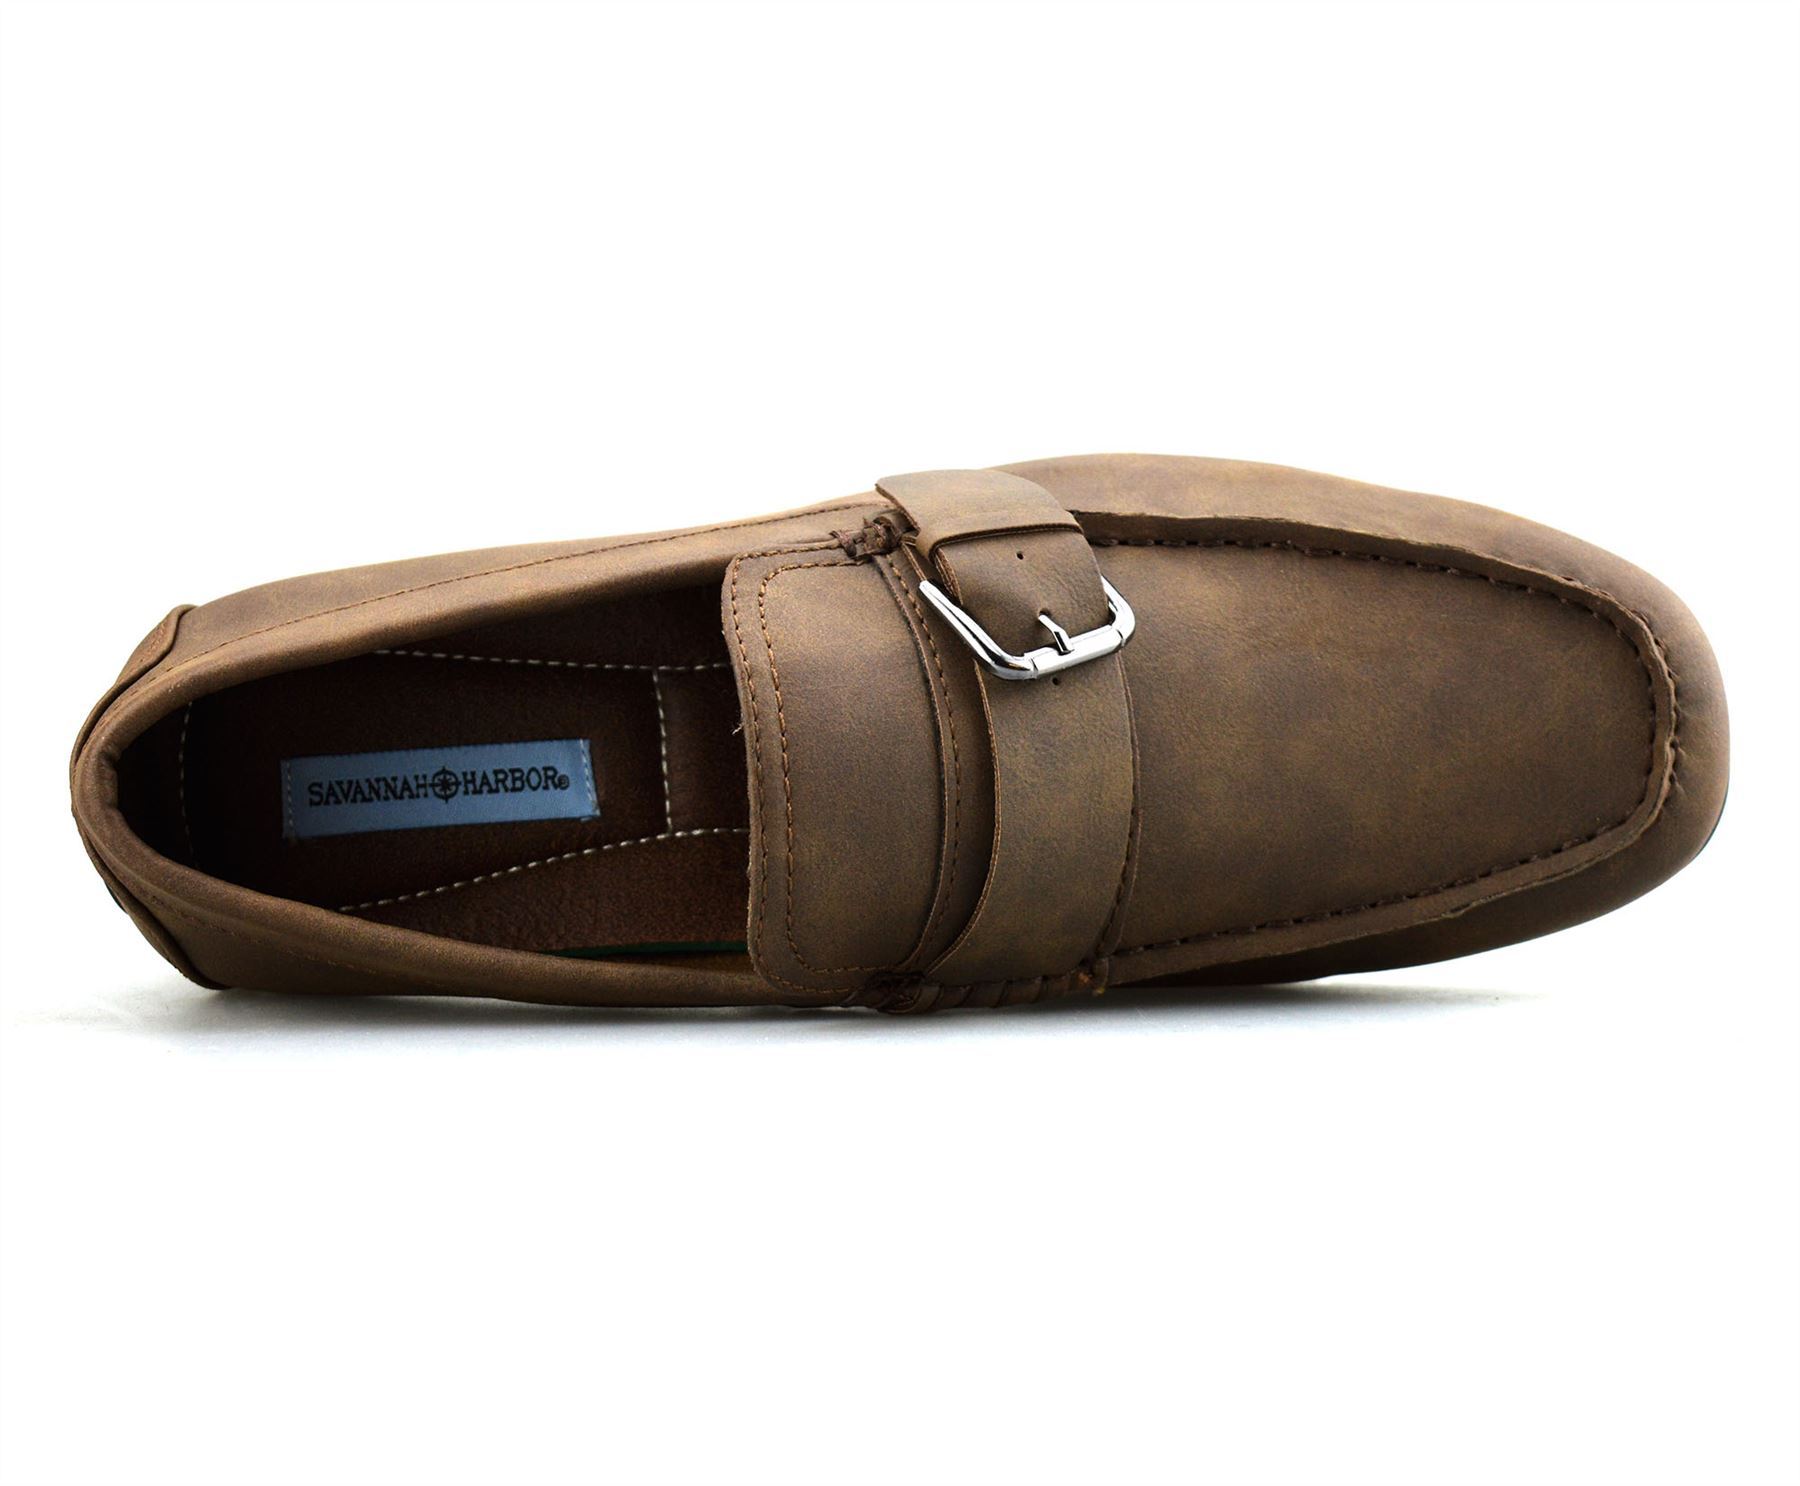 Mens-New-Slip-On-Boat-Deck-Casual-Mocassin-Designer-Loafers-Driving-Shoes-Size thumbnail 17